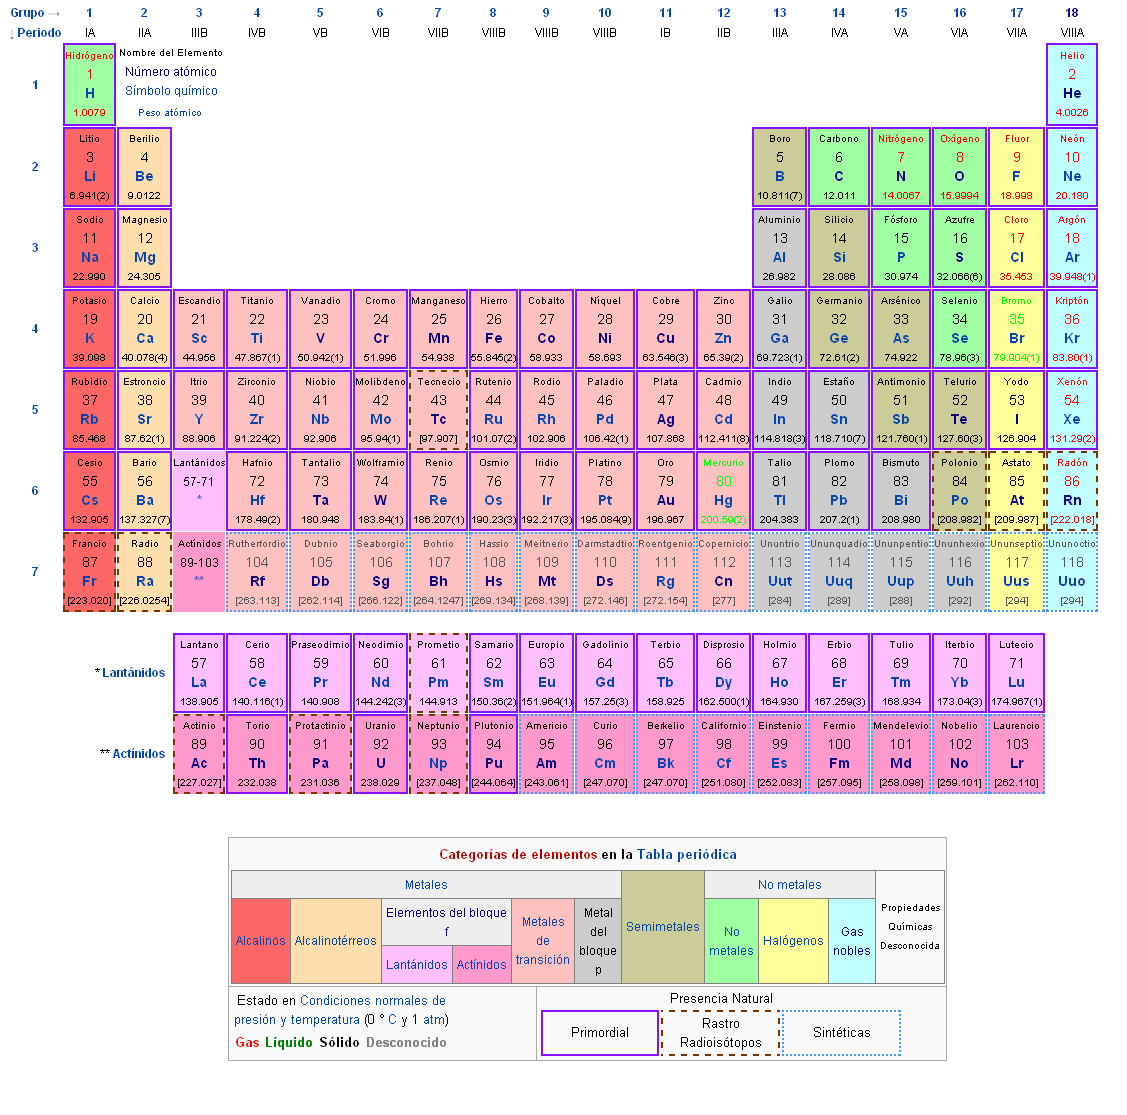 Tabla periodica en latin image collections periodic table and historia de los elementos hd 1080p 4k foto historia de los elementos flavorsomefo image collections urtaz Image collections